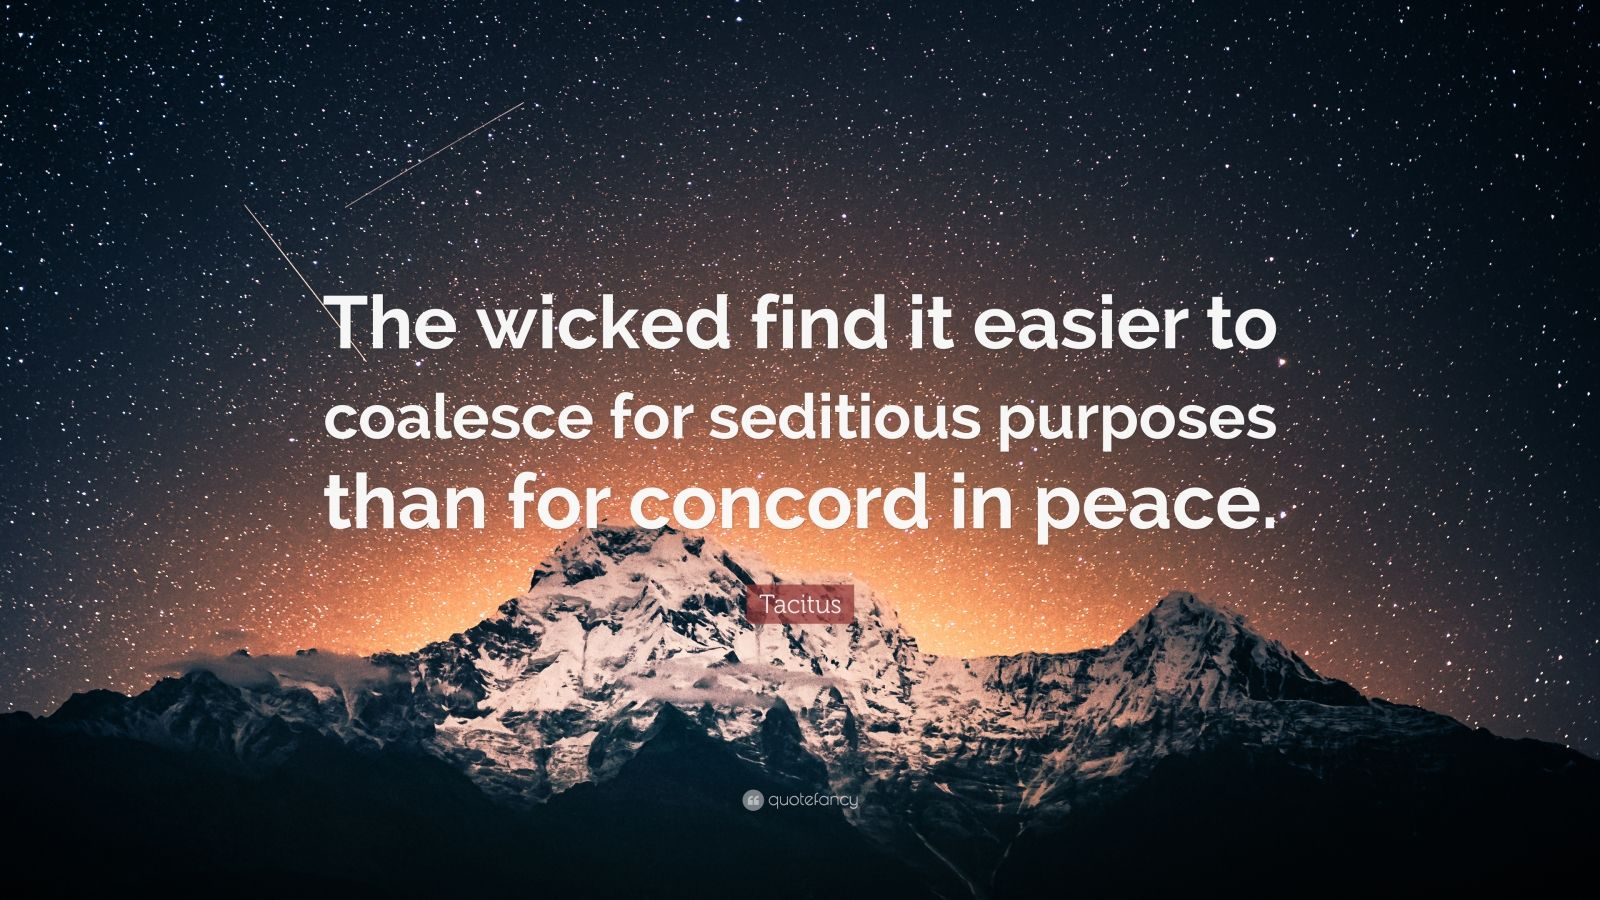 """Tacitus Quote: """"The wicked find it easier to coalesce for seditious purposes than for concord in peace."""""""